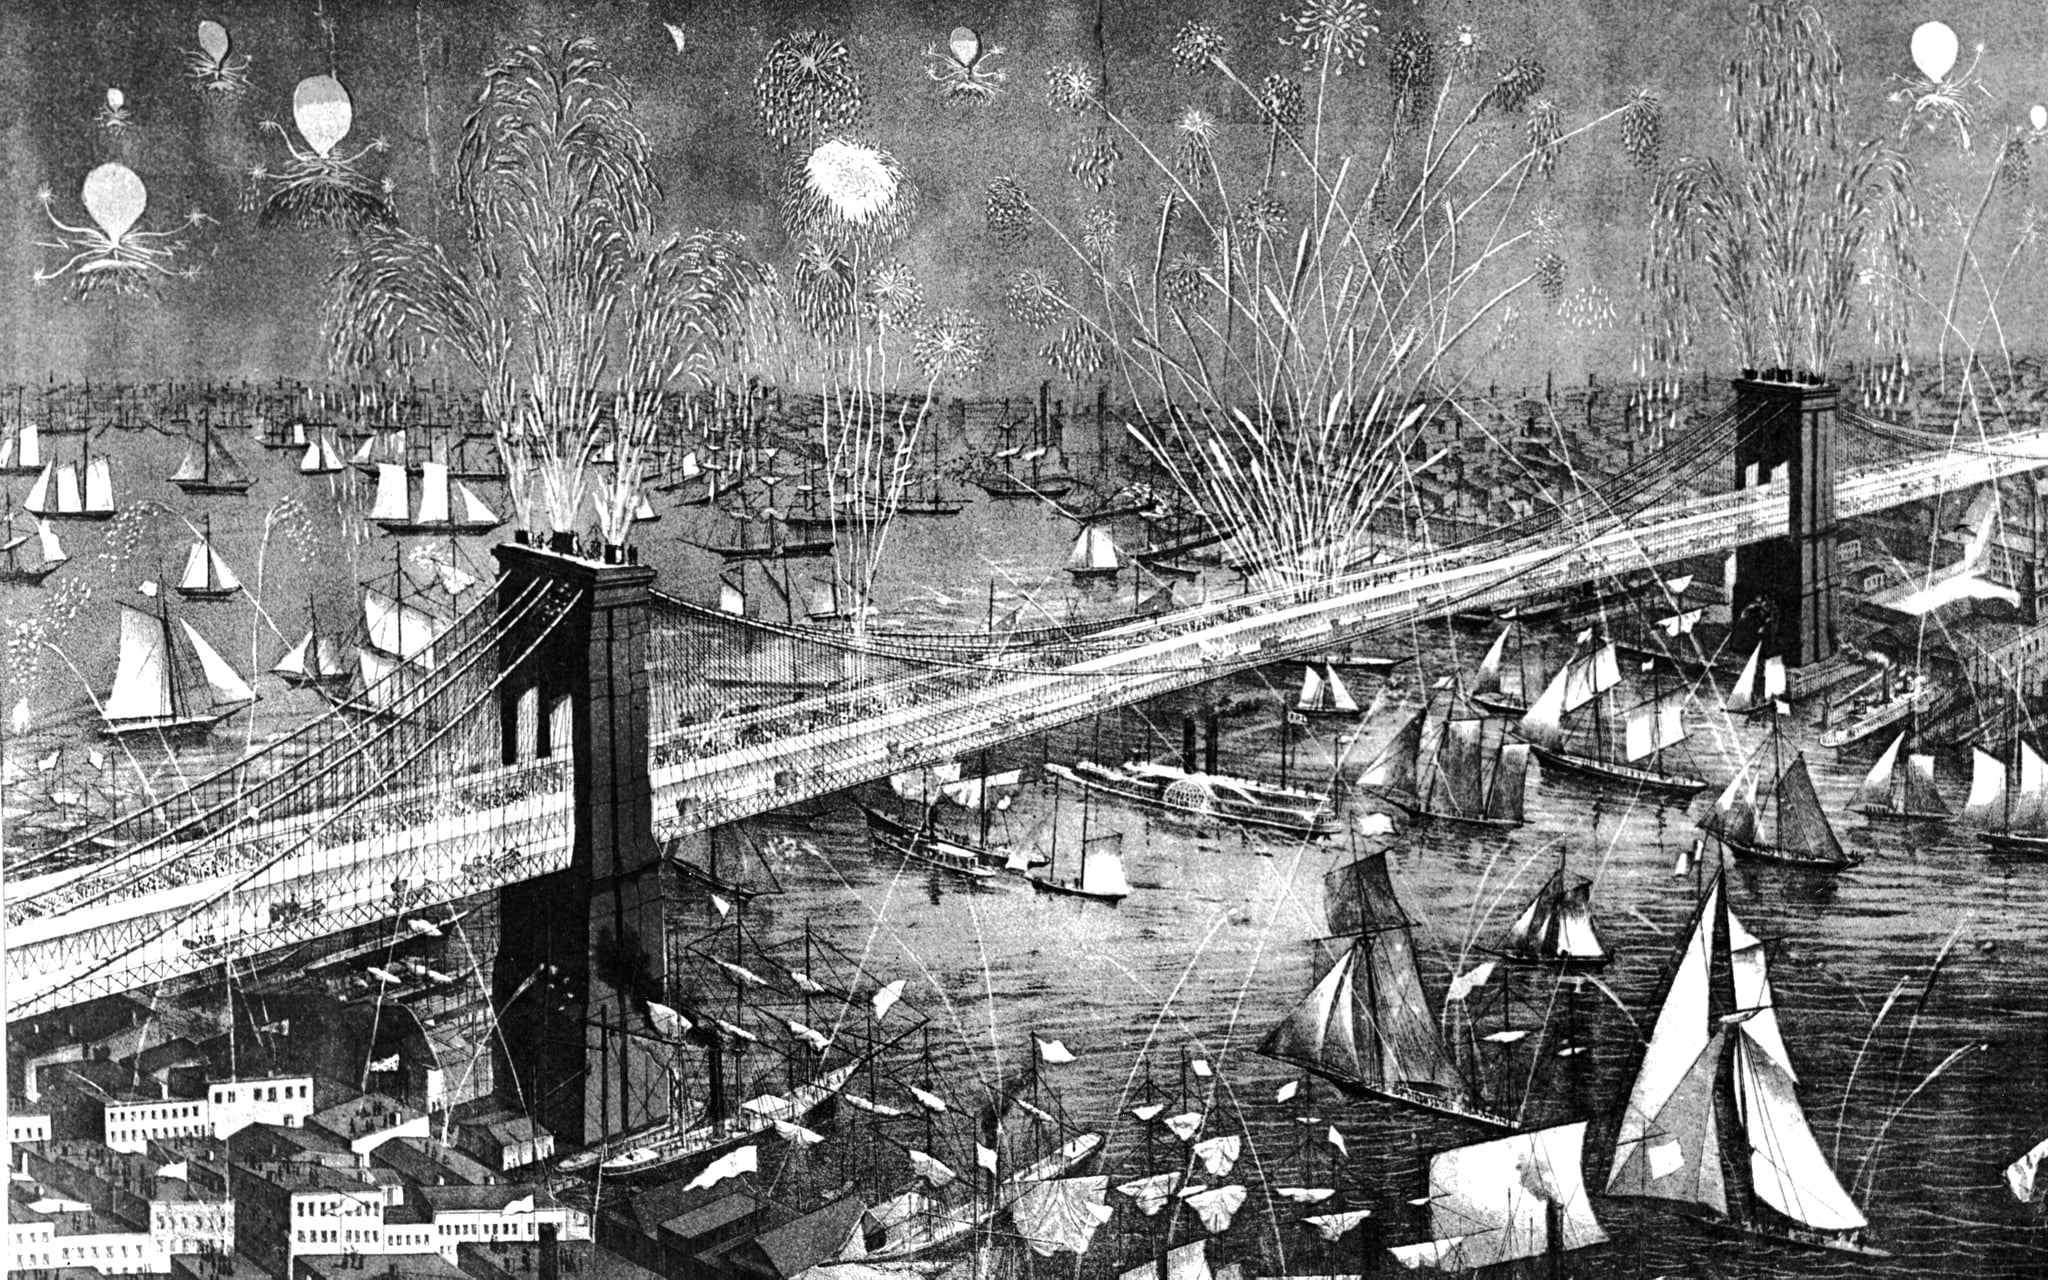 Celebrations for the grand opening of the bridge, May 24, 1883.